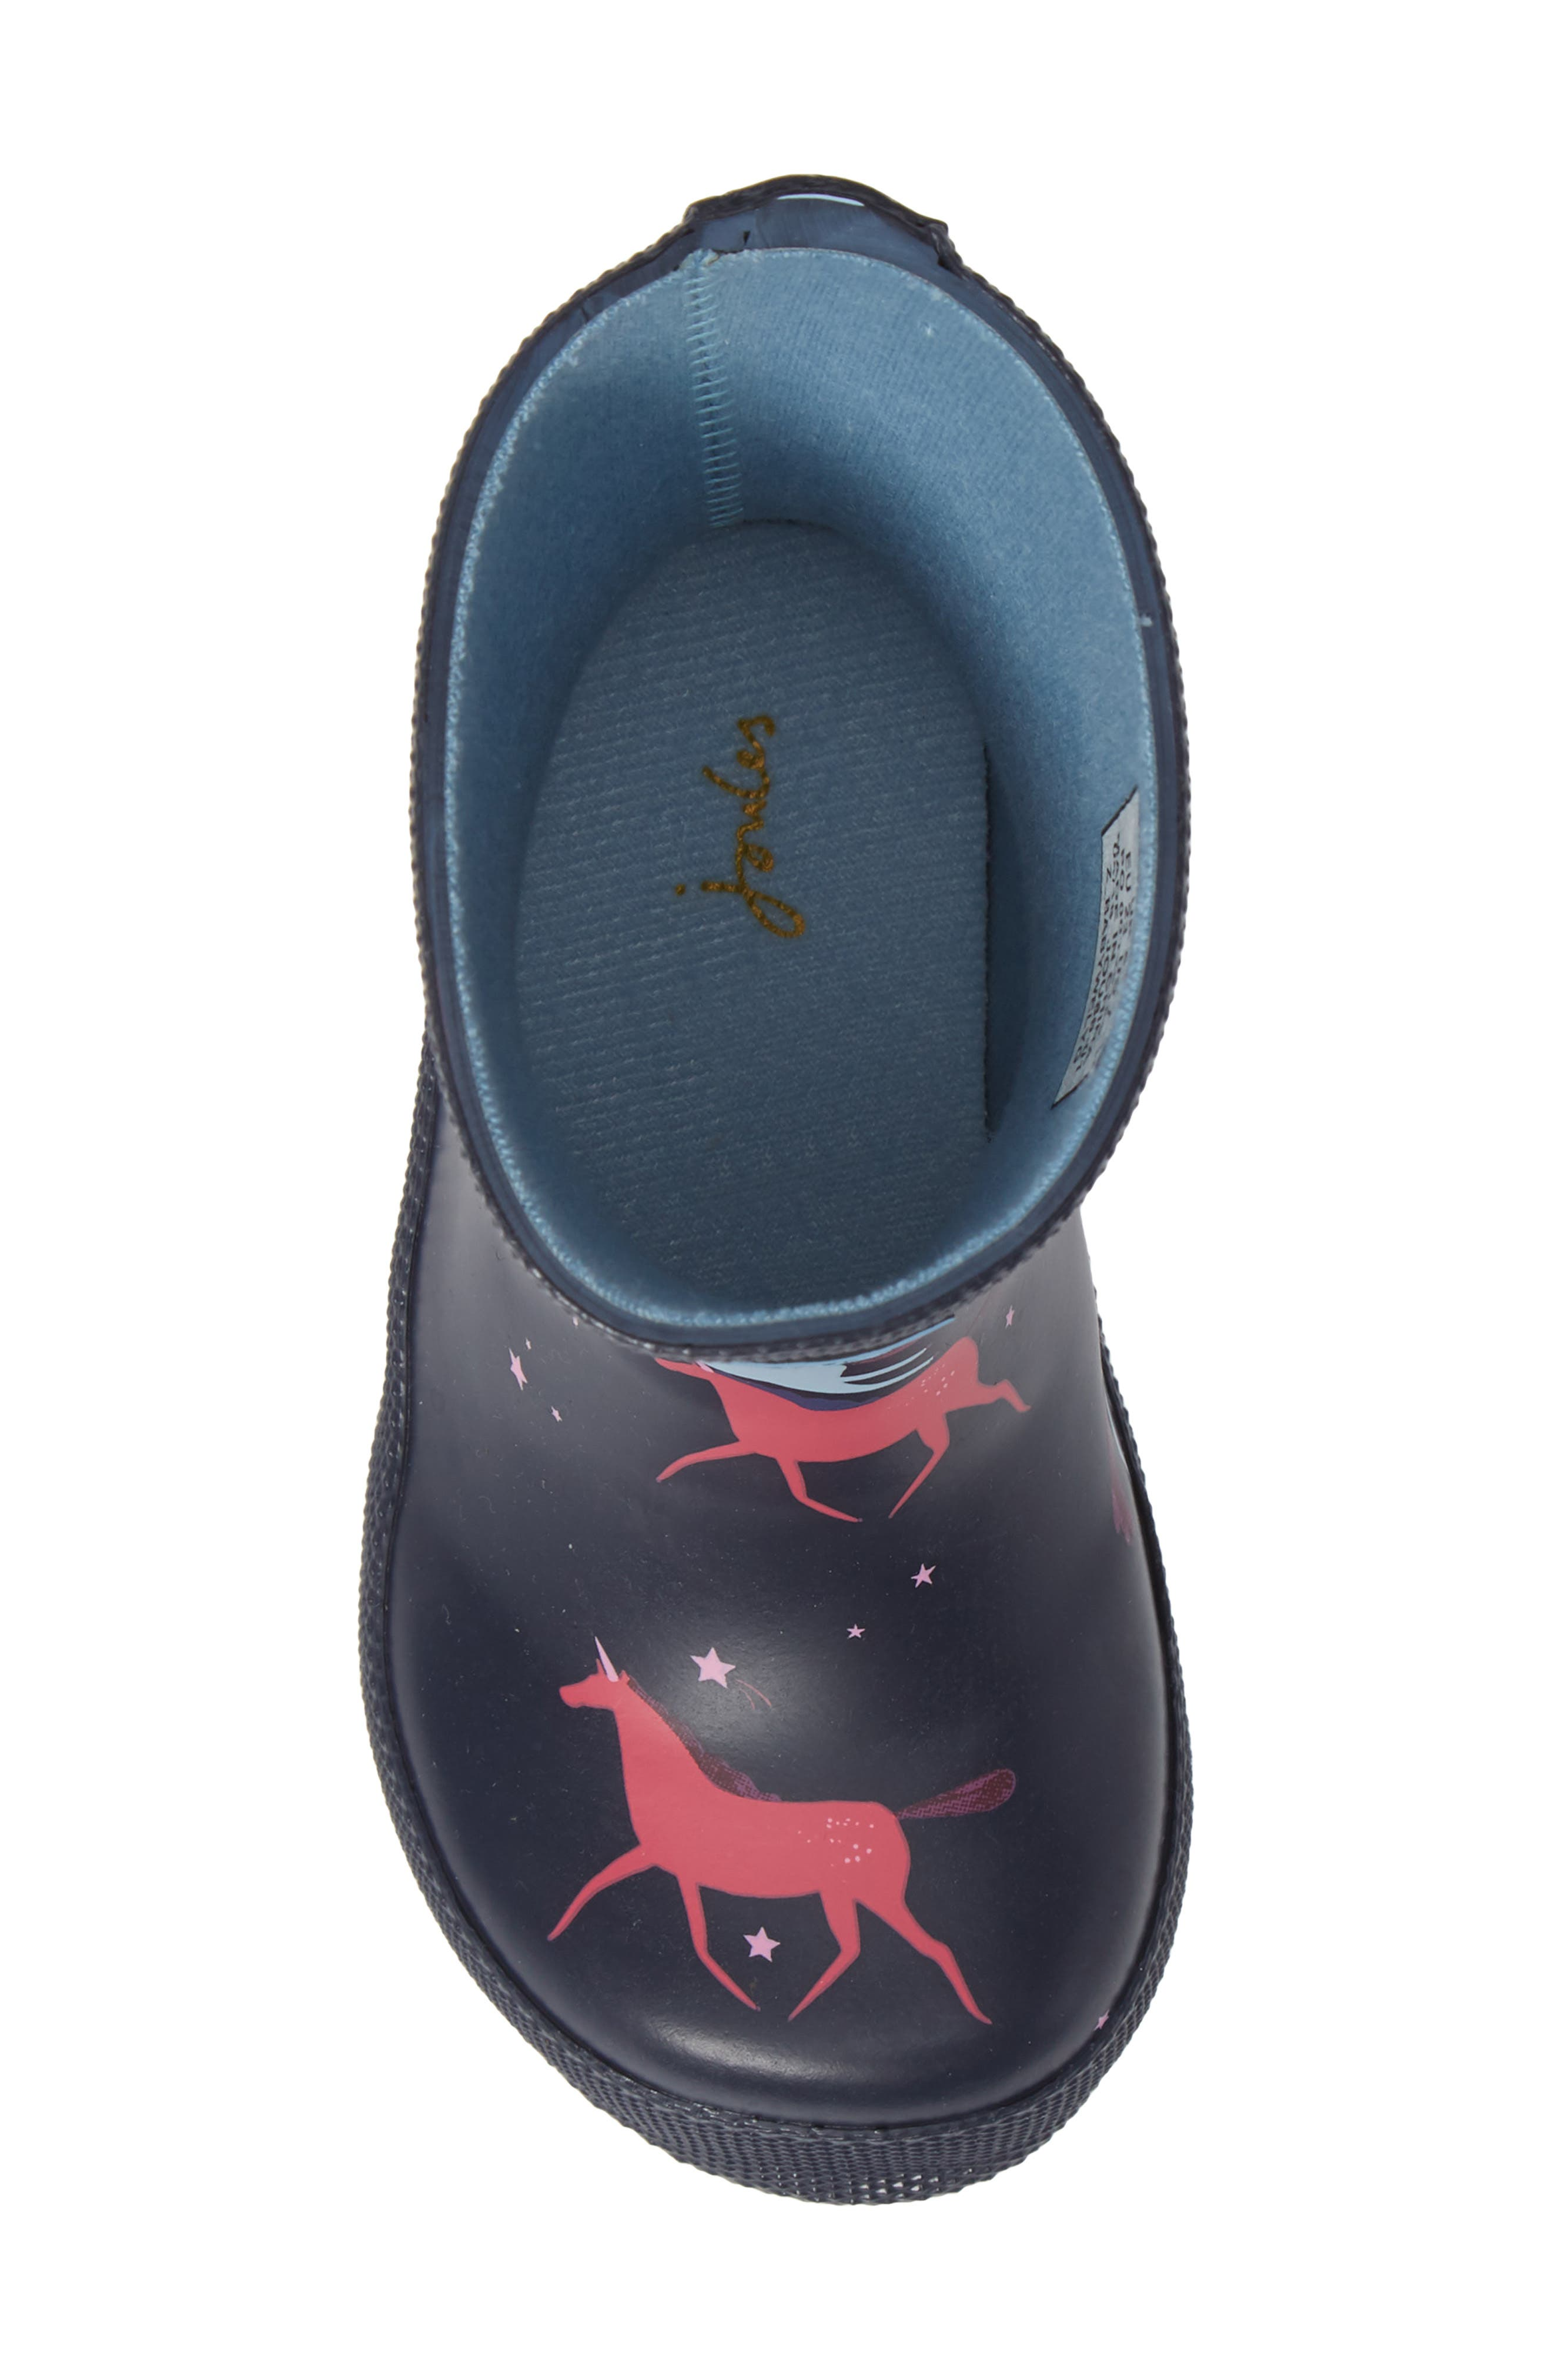 JOULES,                             Baby Welly Print Waterproof Boot,                             Alternate thumbnail 5, color,                             NAVY MAGICAL UNICORN